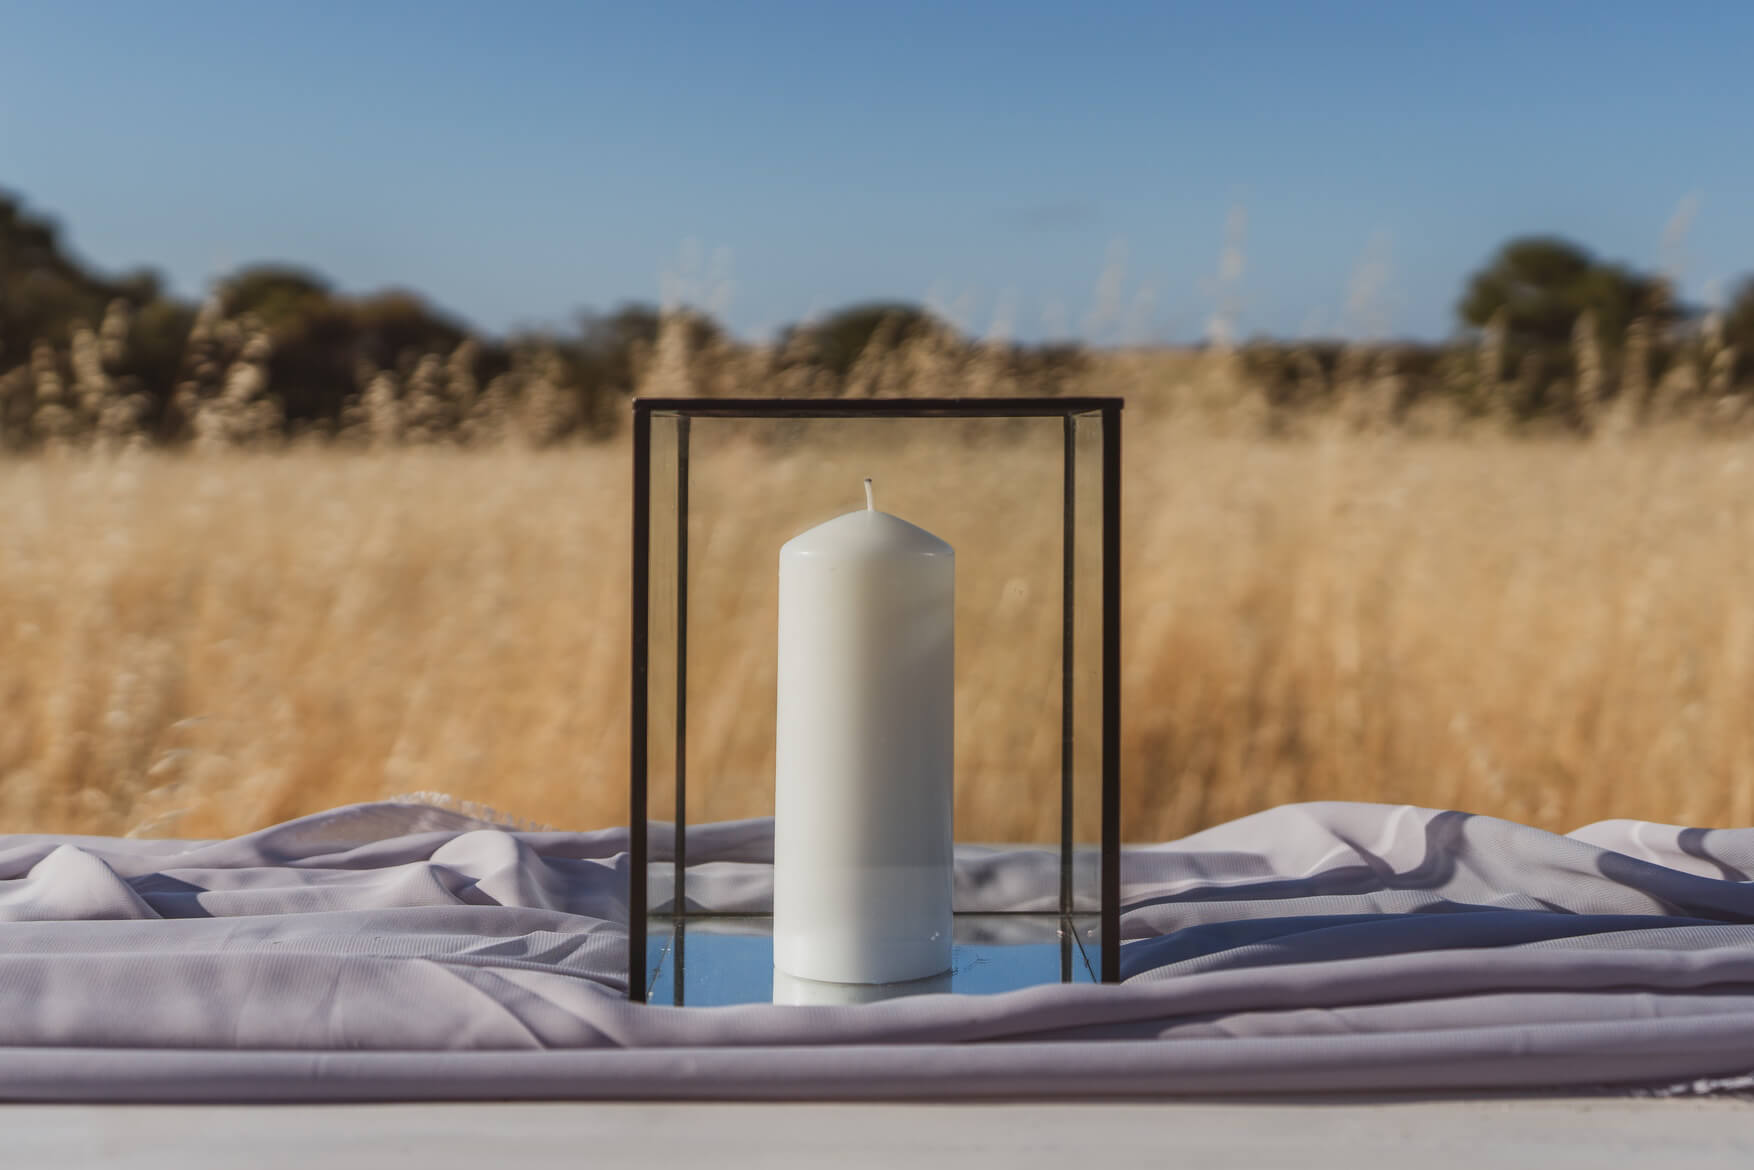 Black rimmed candle holder with pillar candle